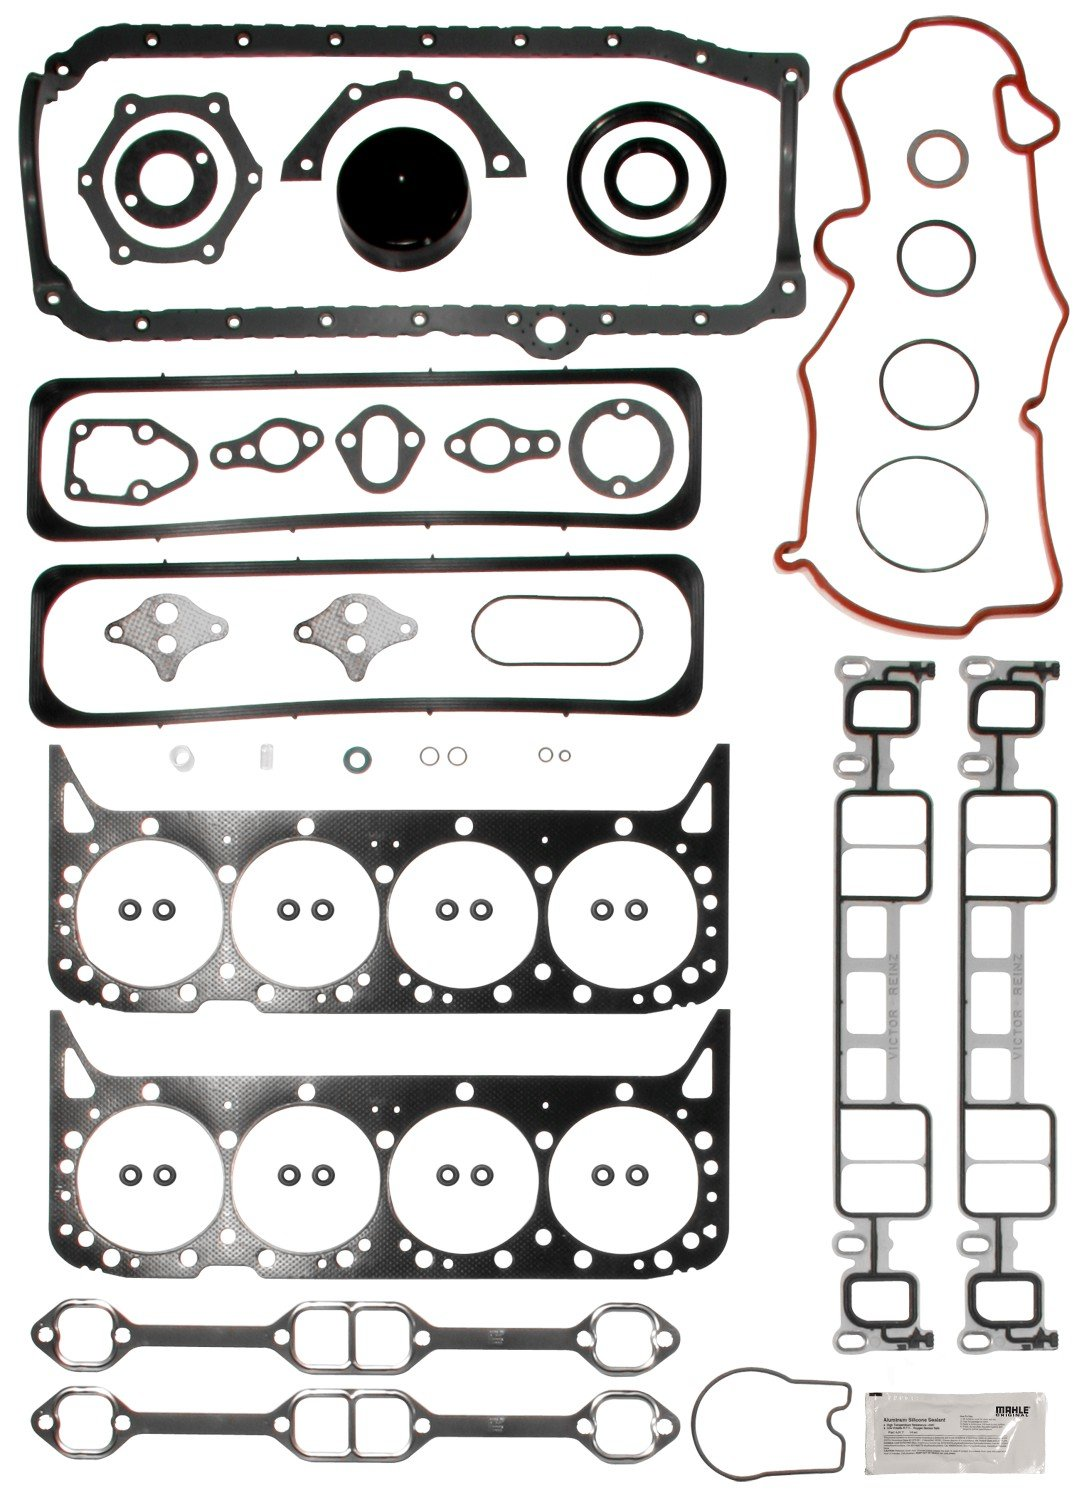 MAHLE Original 95-3488 Engine Kit Gasket Set